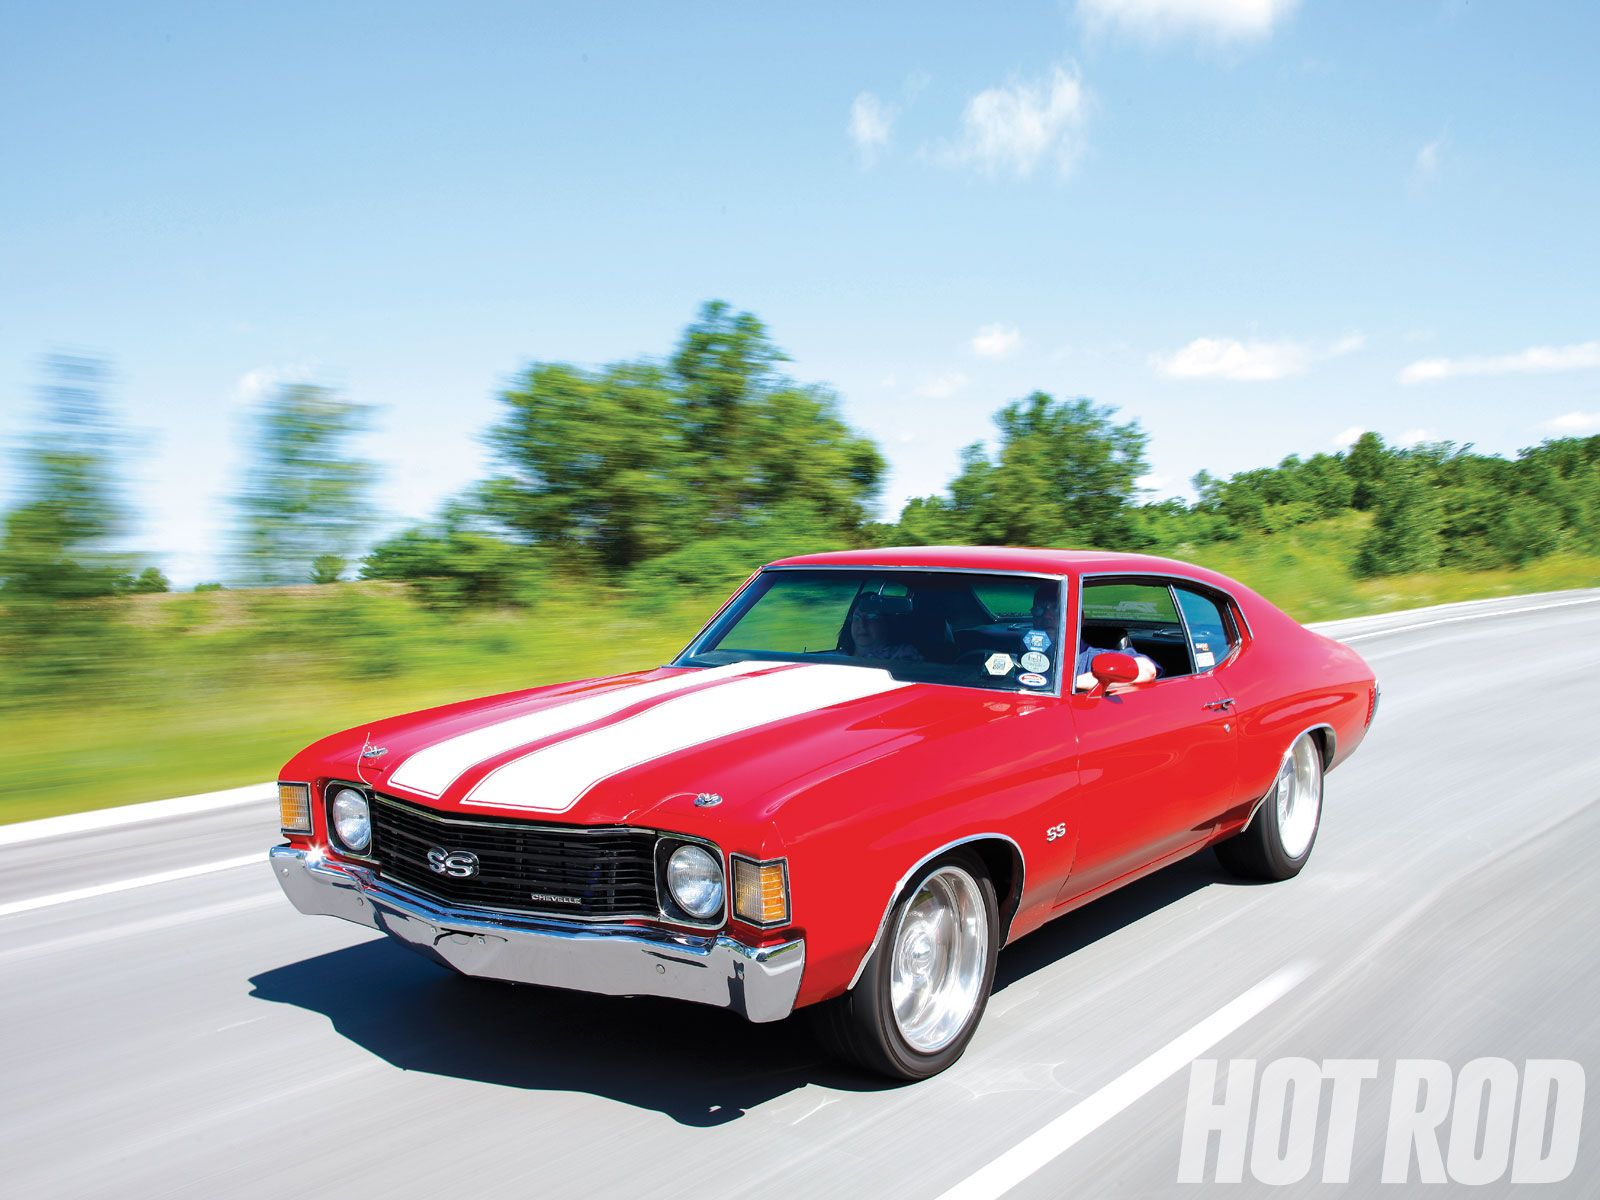 1972 Chevy Chevelle SS | Nice Rides | Pinterest | Chevy chevelle ss ...